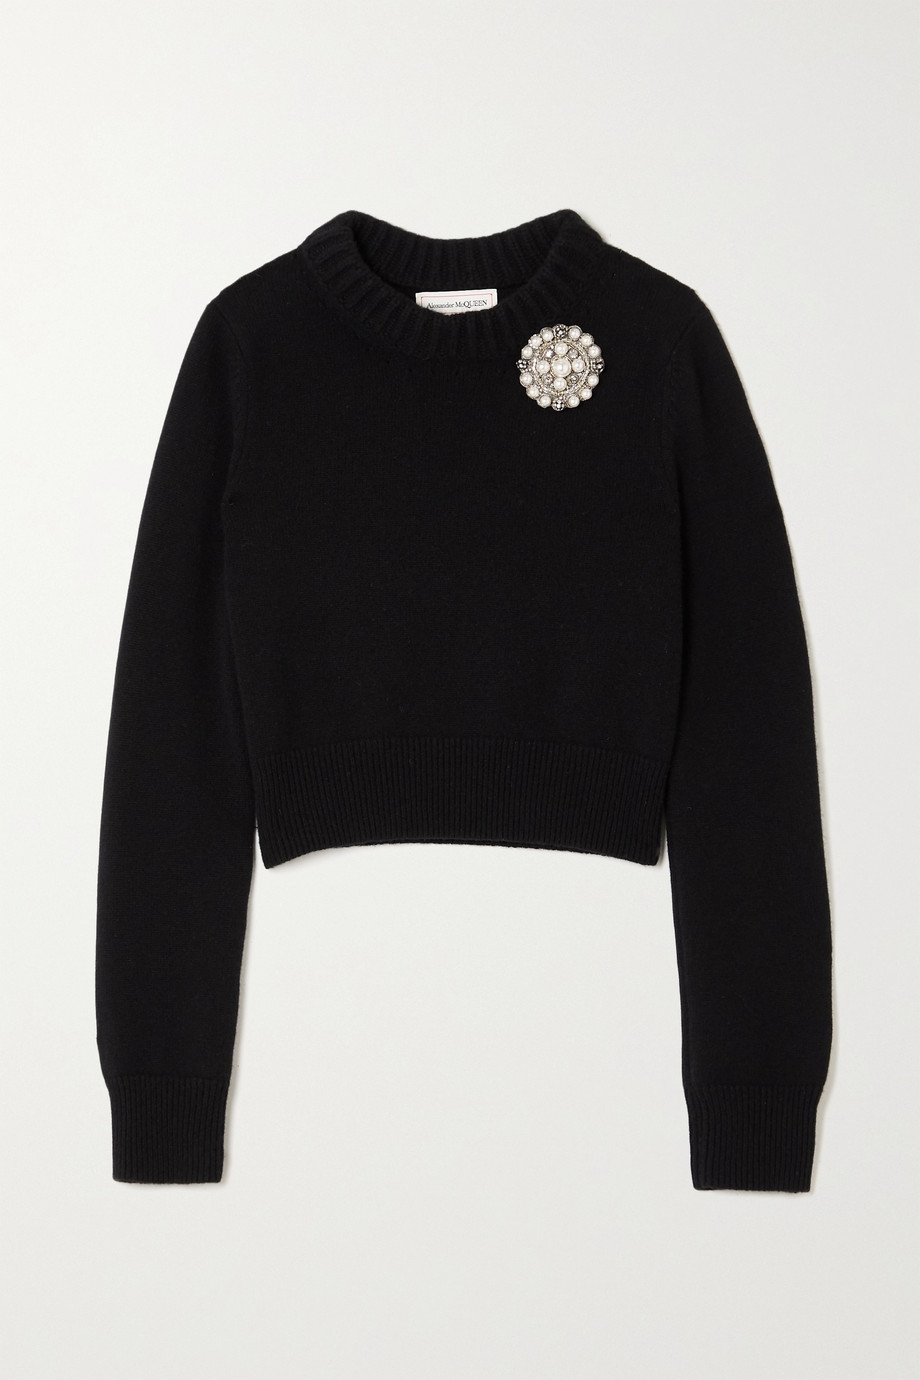 Alexander McQueen Cropped embellished cashmere sweater